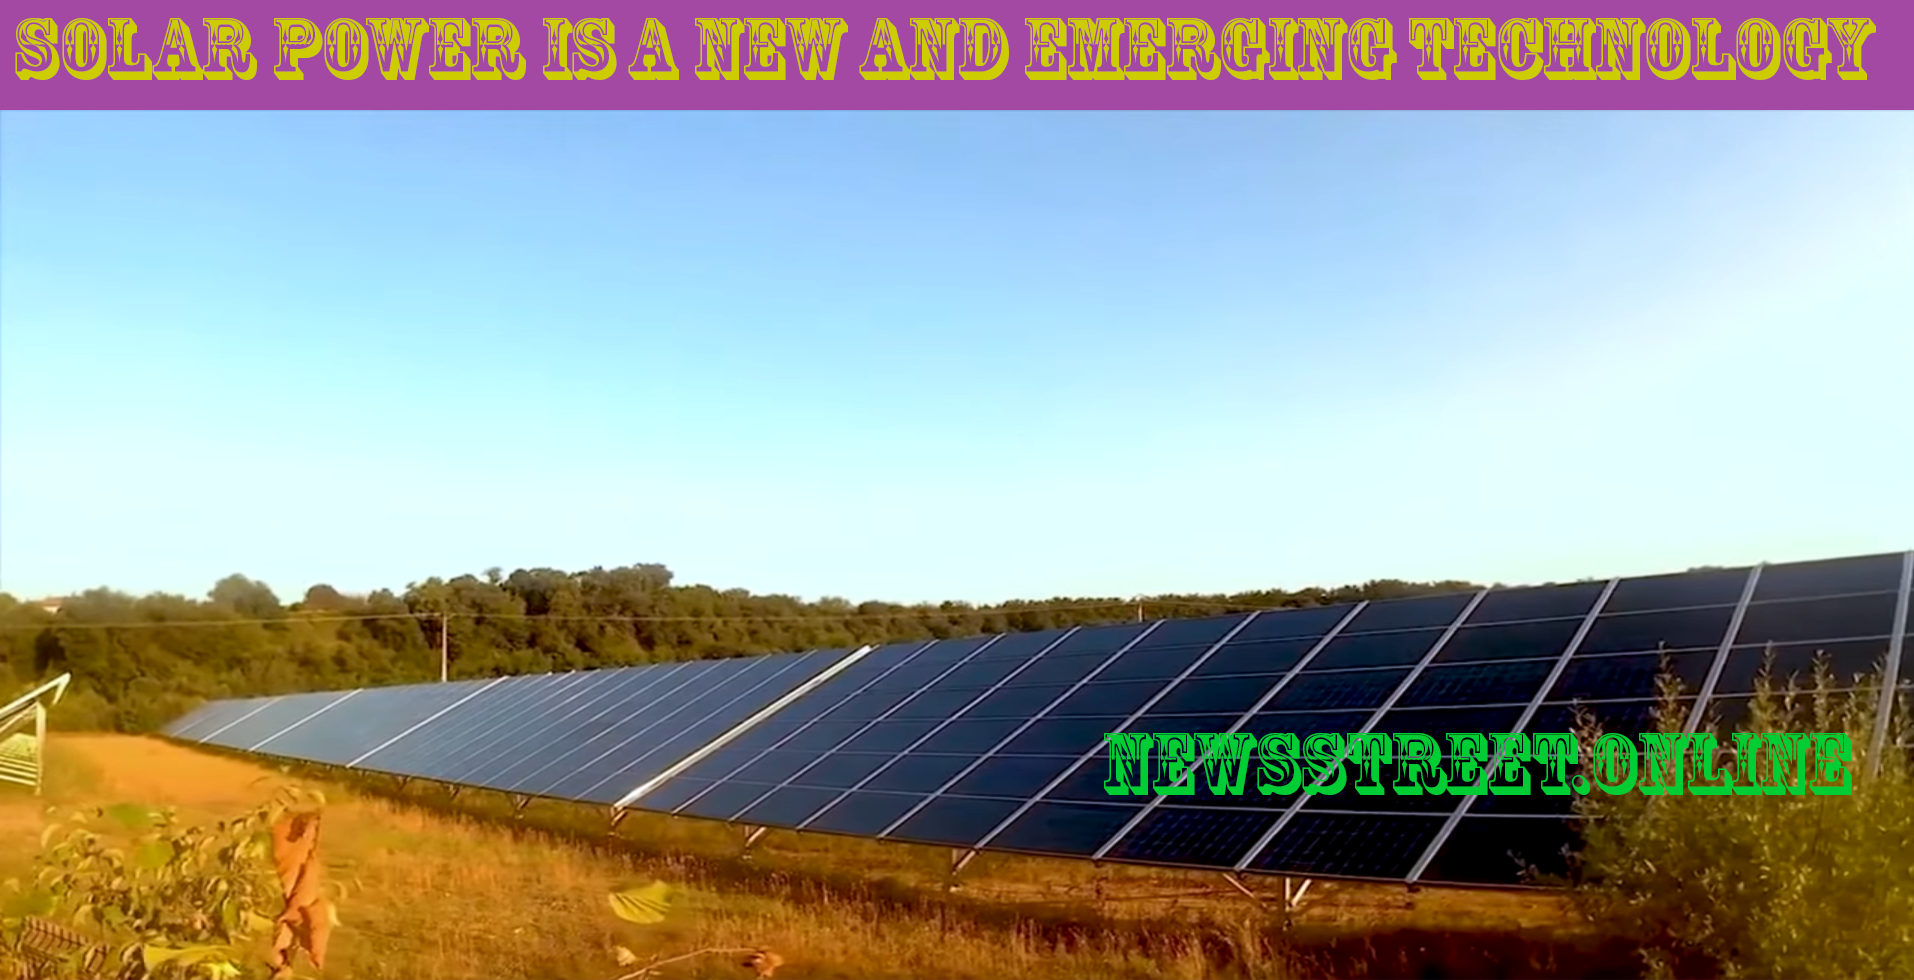 Solar Power is a new and emerging technology